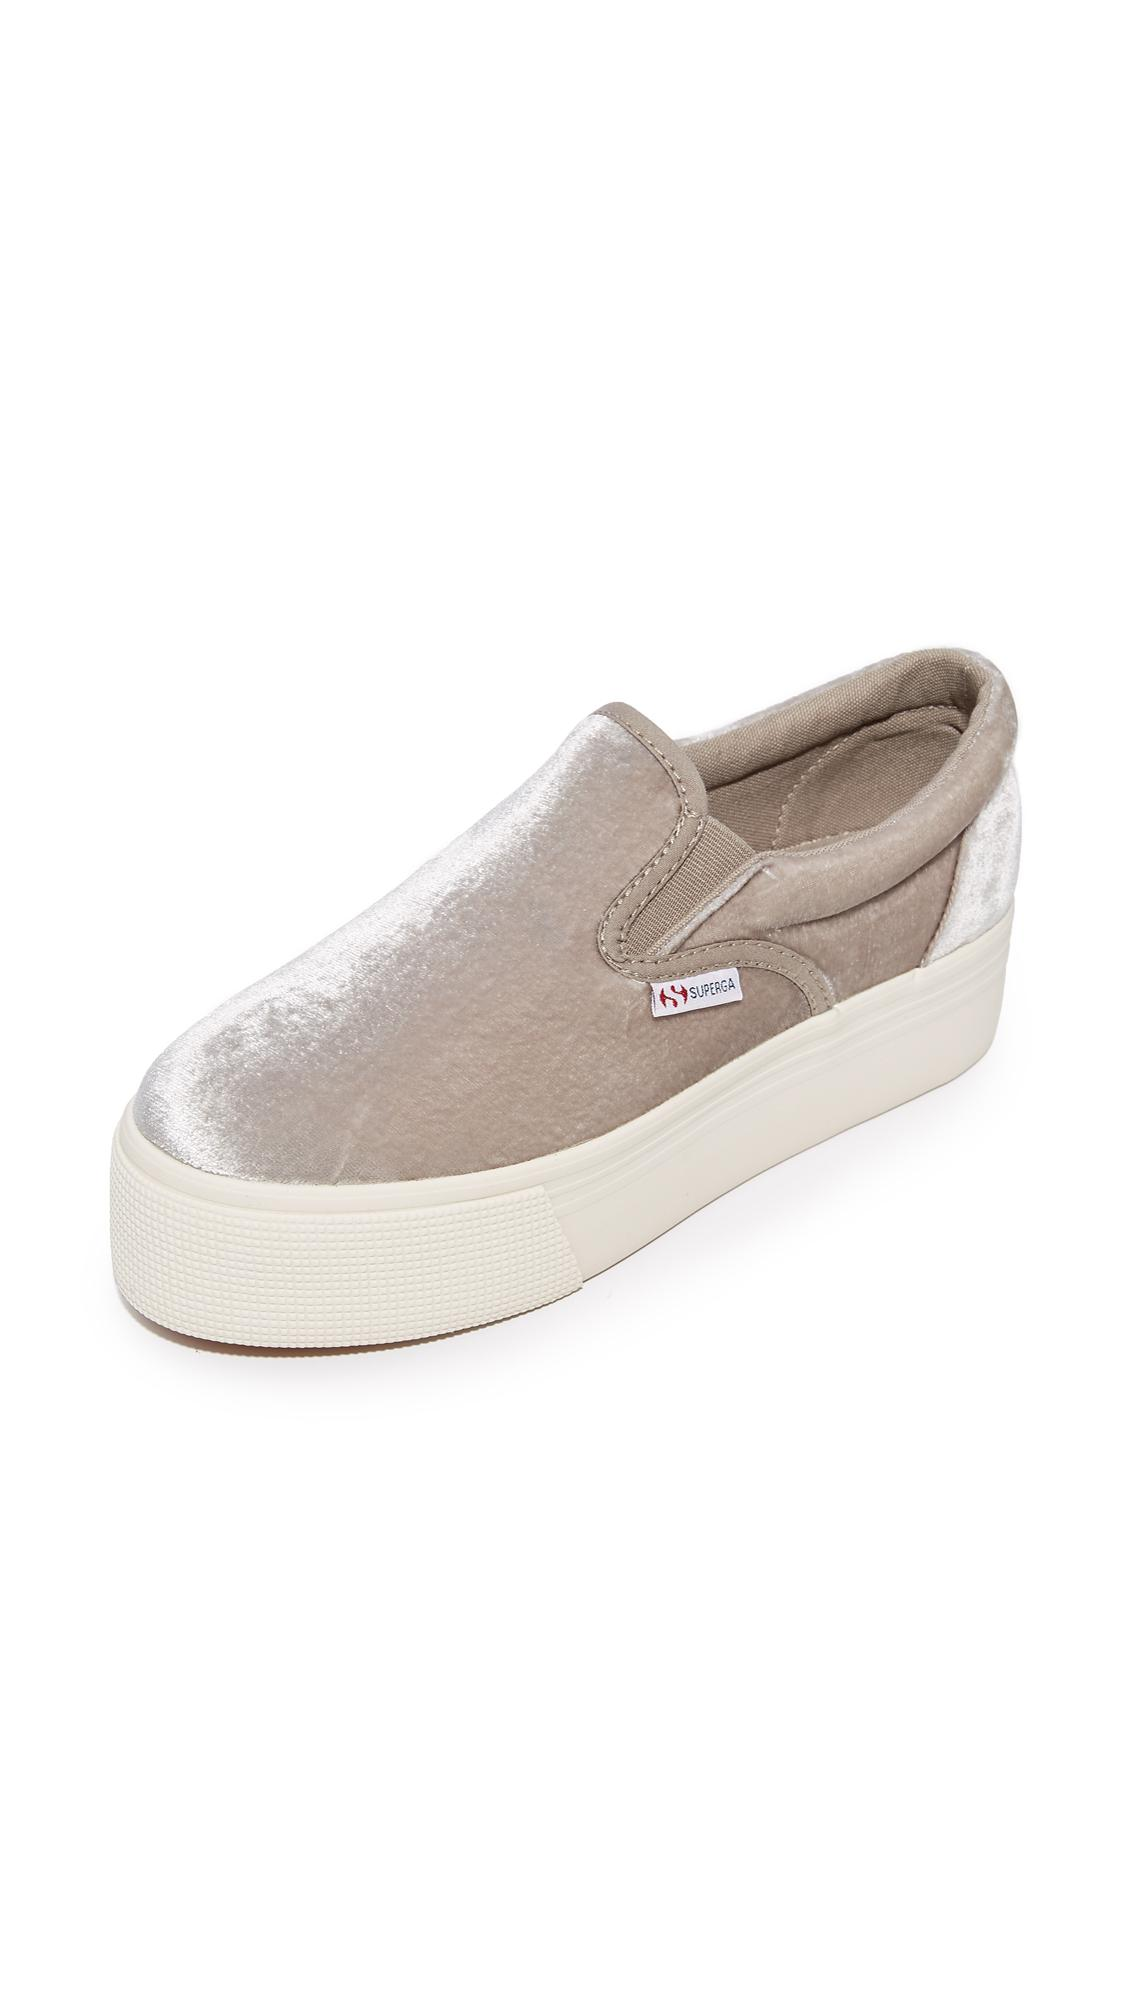 Superga Velvet Platform Sneaker In Grey Women's Shoes